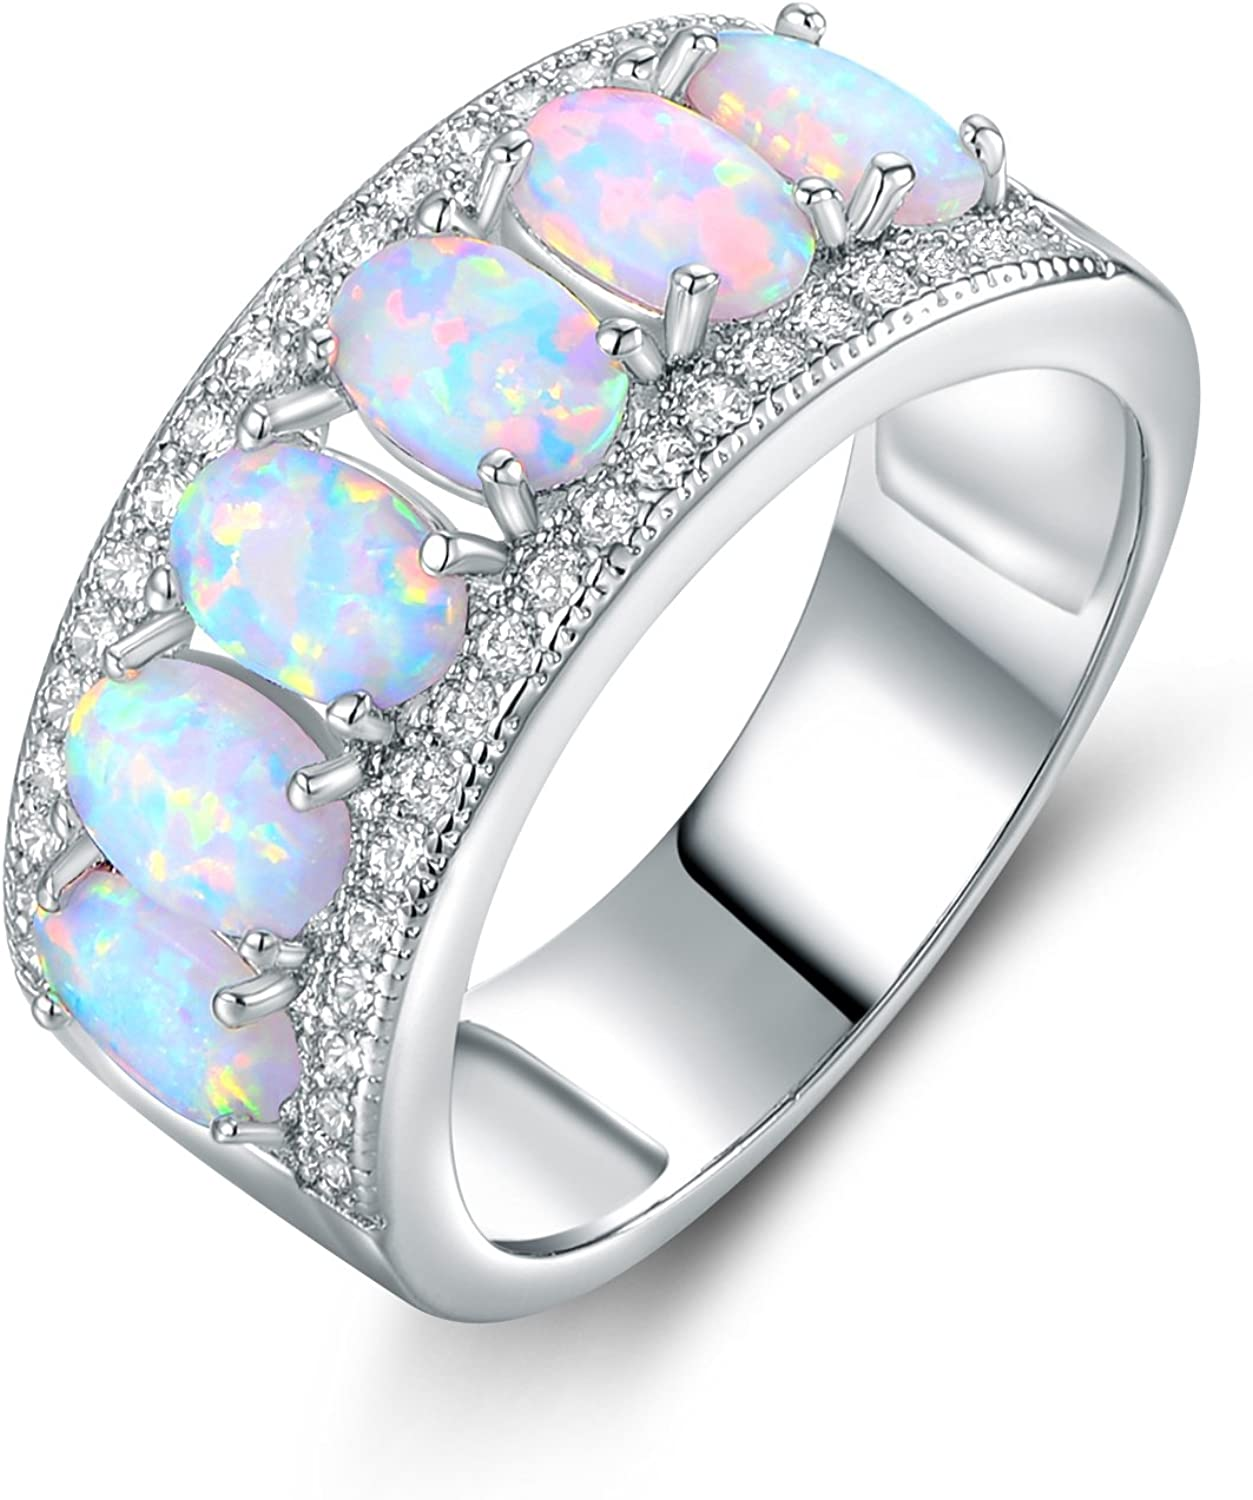 Barzel Oval-Cut Created White Opal & Cubic Zirconia Ring (Comes in Rose & White Gold Plated)